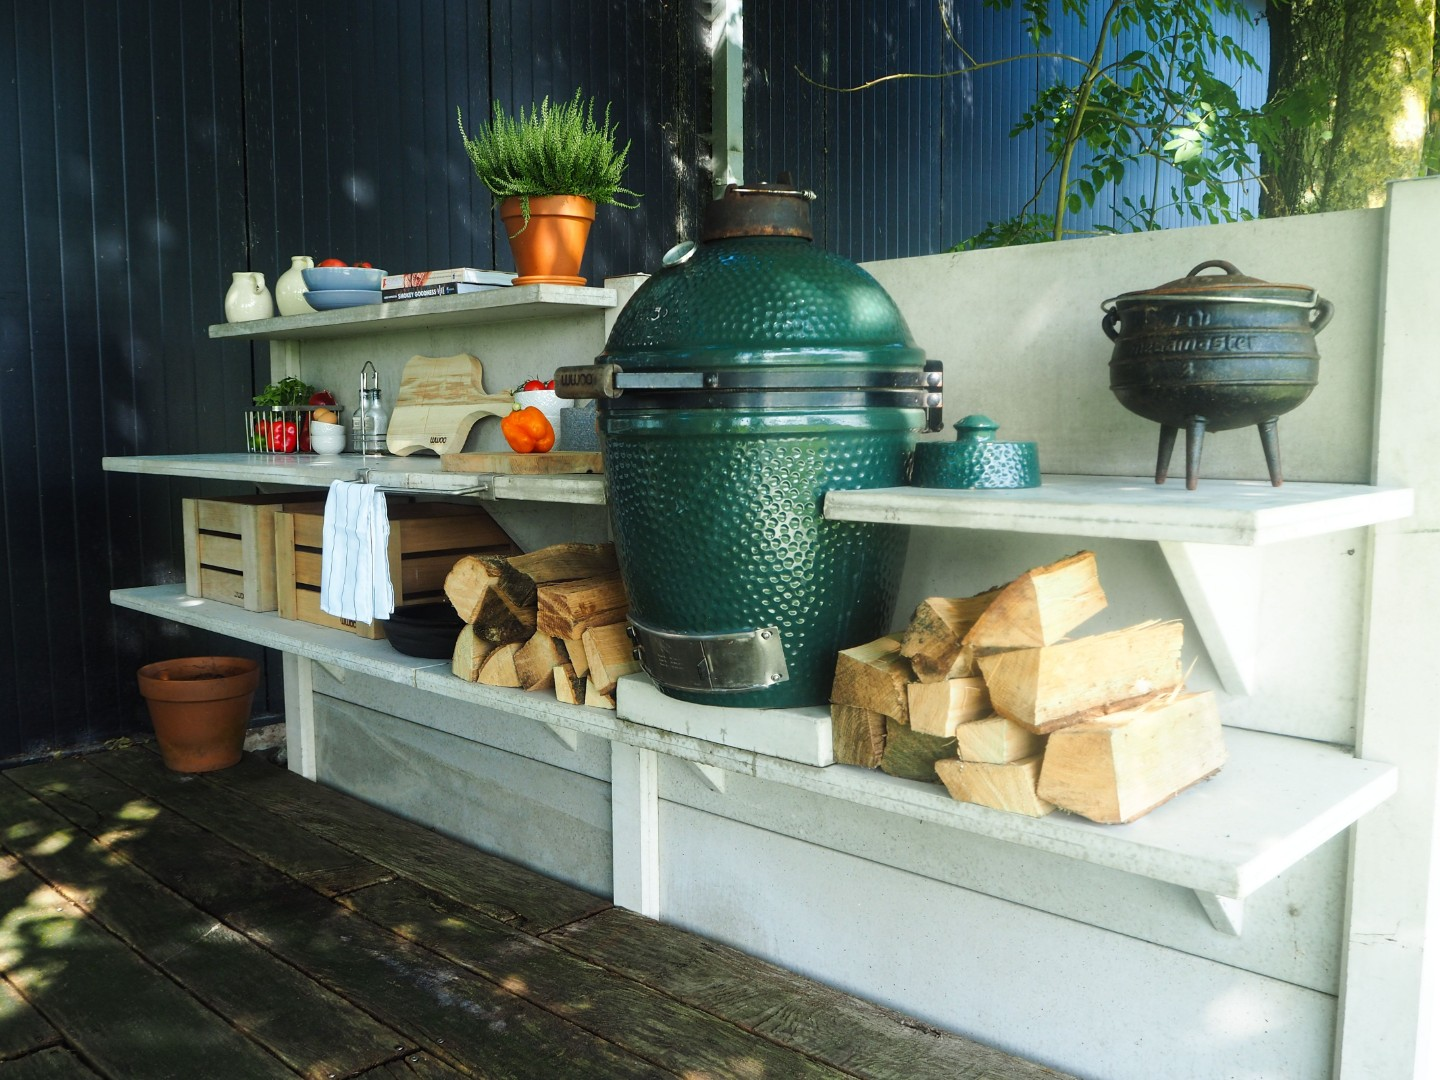 Medium Big Green Egg в кухне